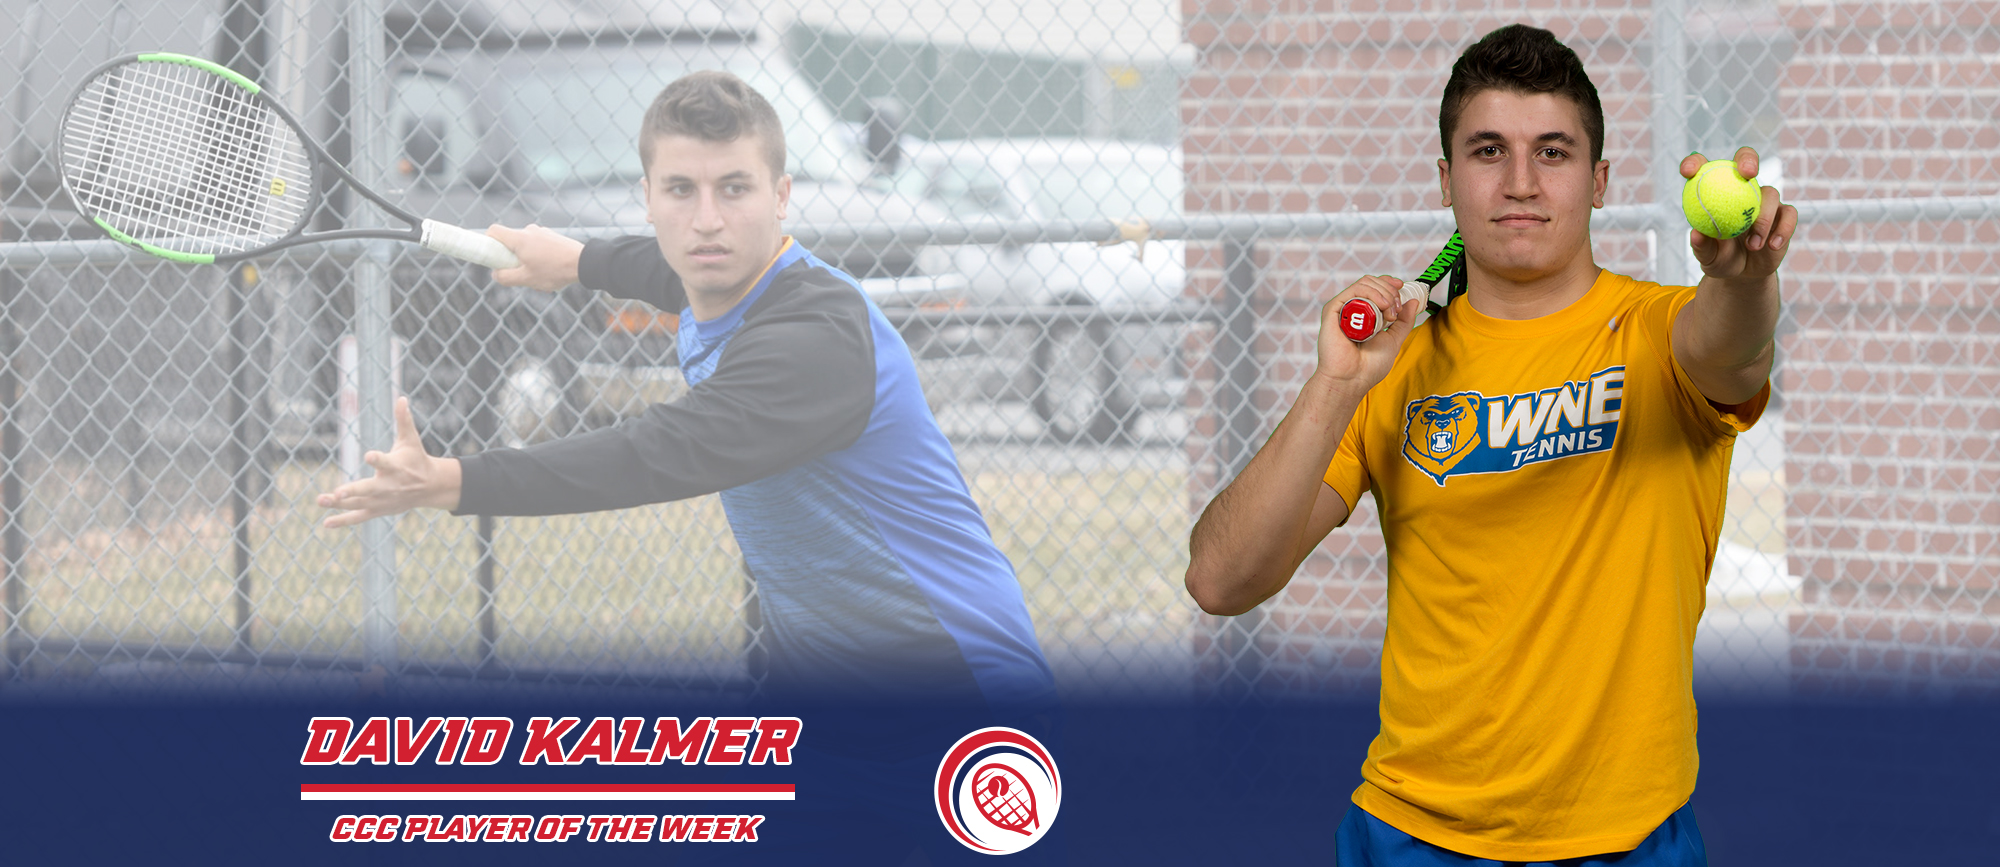 David Kalmer Earns CCC Player of the Week Honors